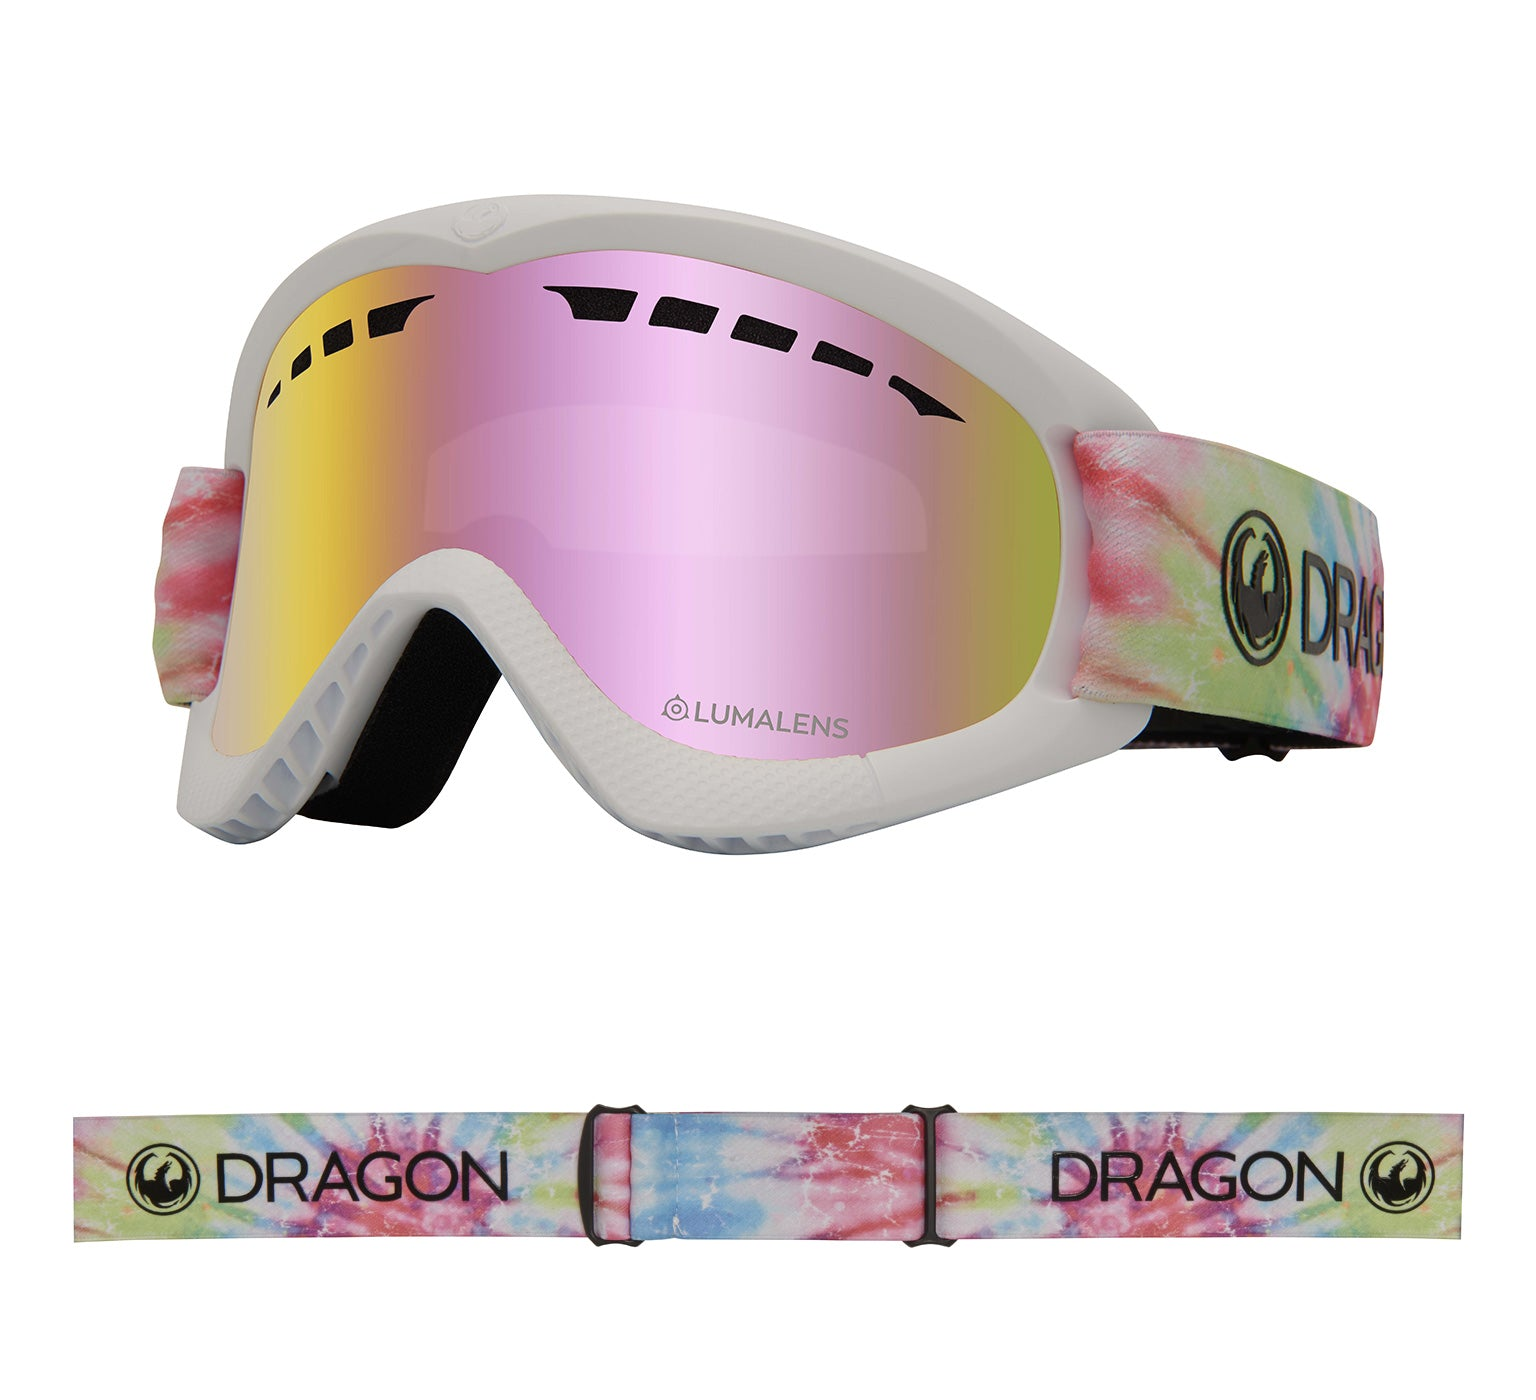 DXs - Tie Dye with Lumalens Pink Ionized Lens